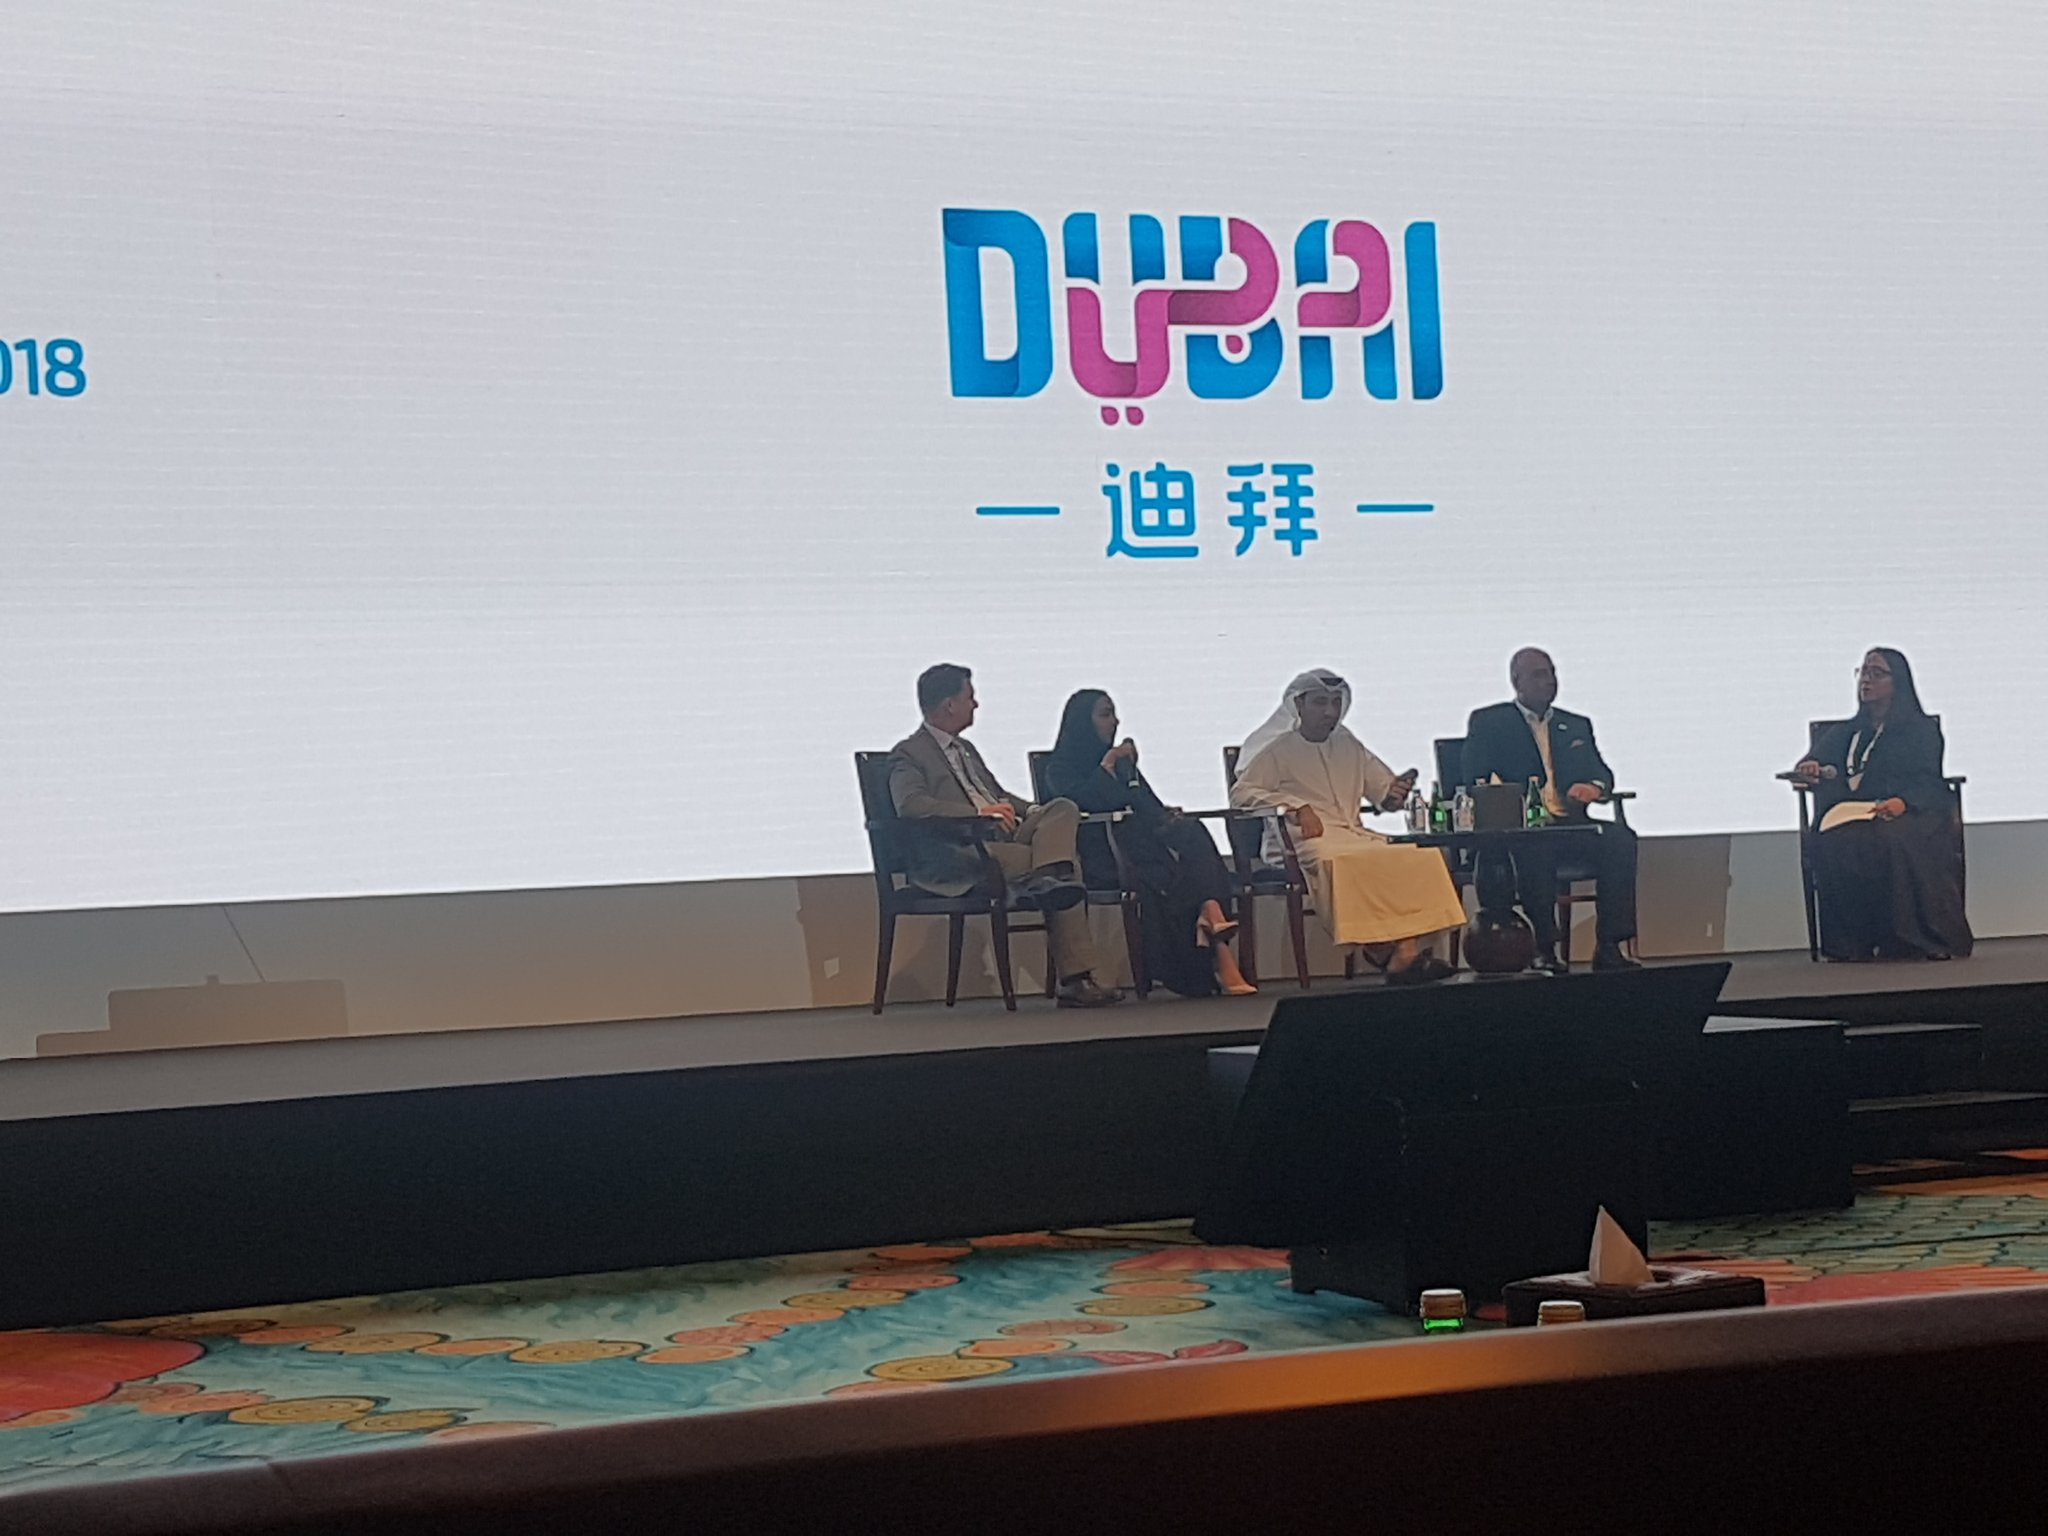 Dubai Tourism On Twitter Zeina Dagher Senior Director Of Burjkhalifa Emaar Properties We Can See An Increase In Chinese Visitors In Emaardubai S Attractions Throughout The Year Such As In The Dubai Mall